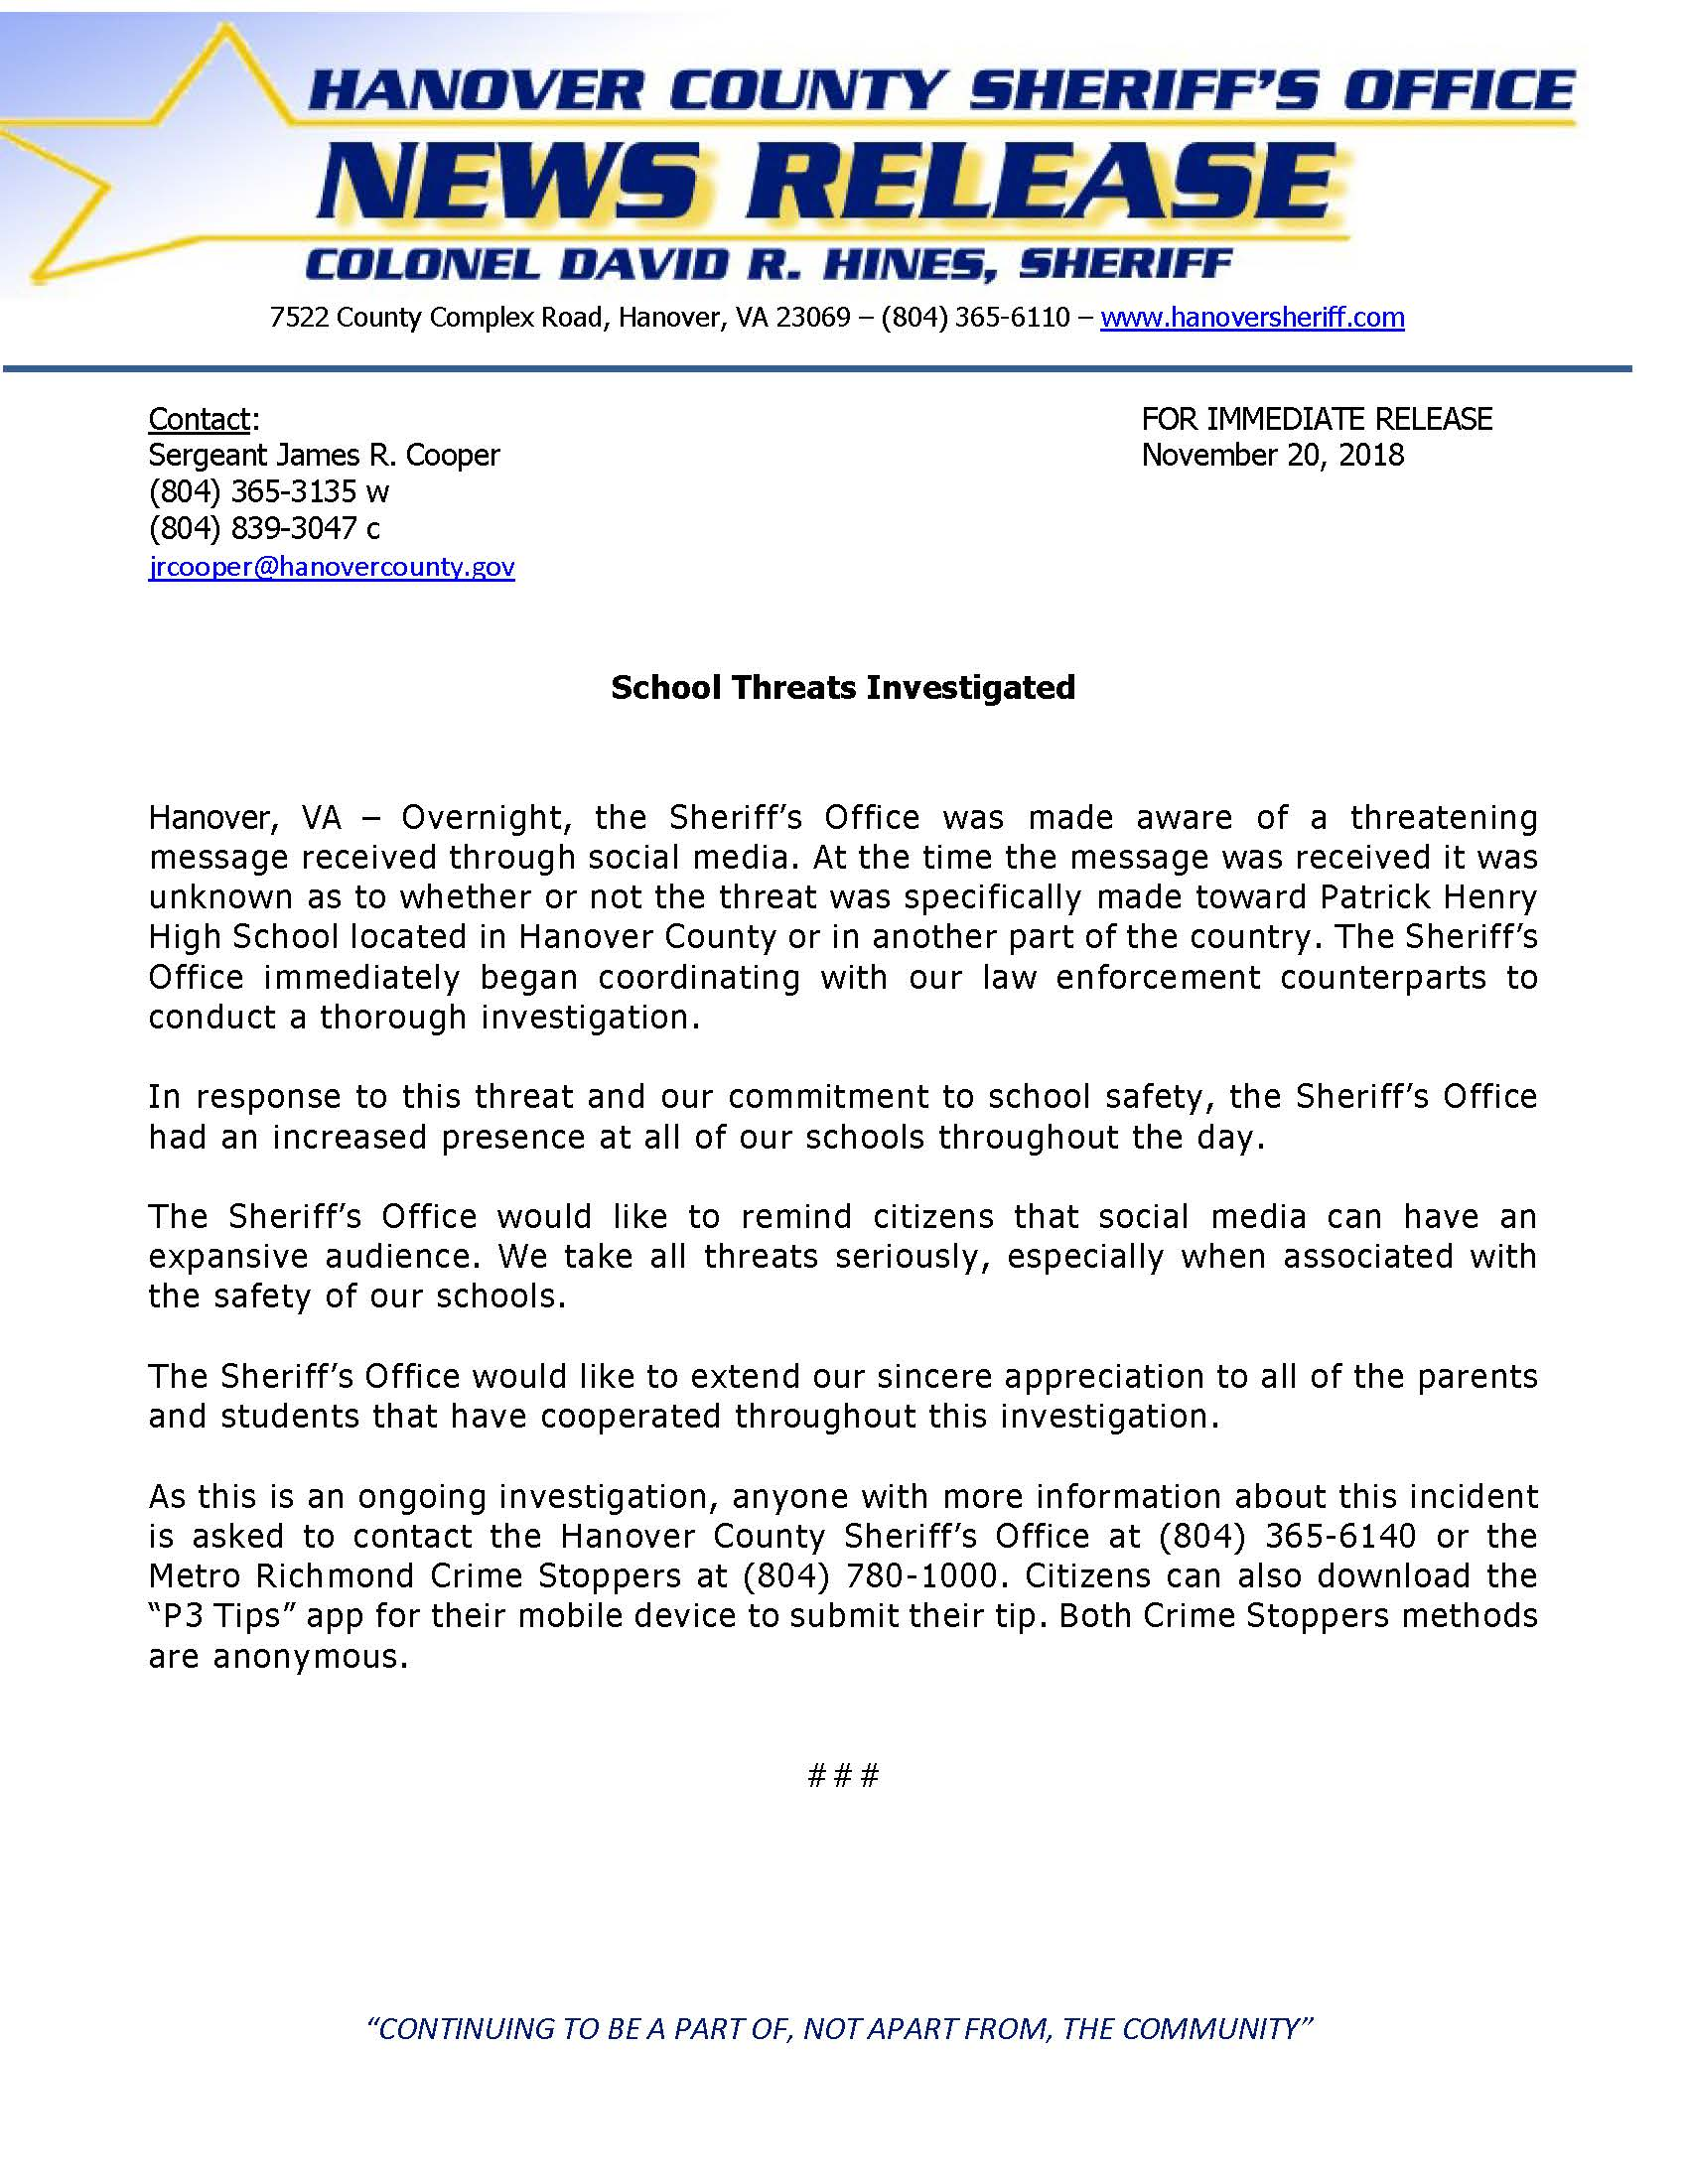 HCSO - School Threats Investigated- November 20, 2018